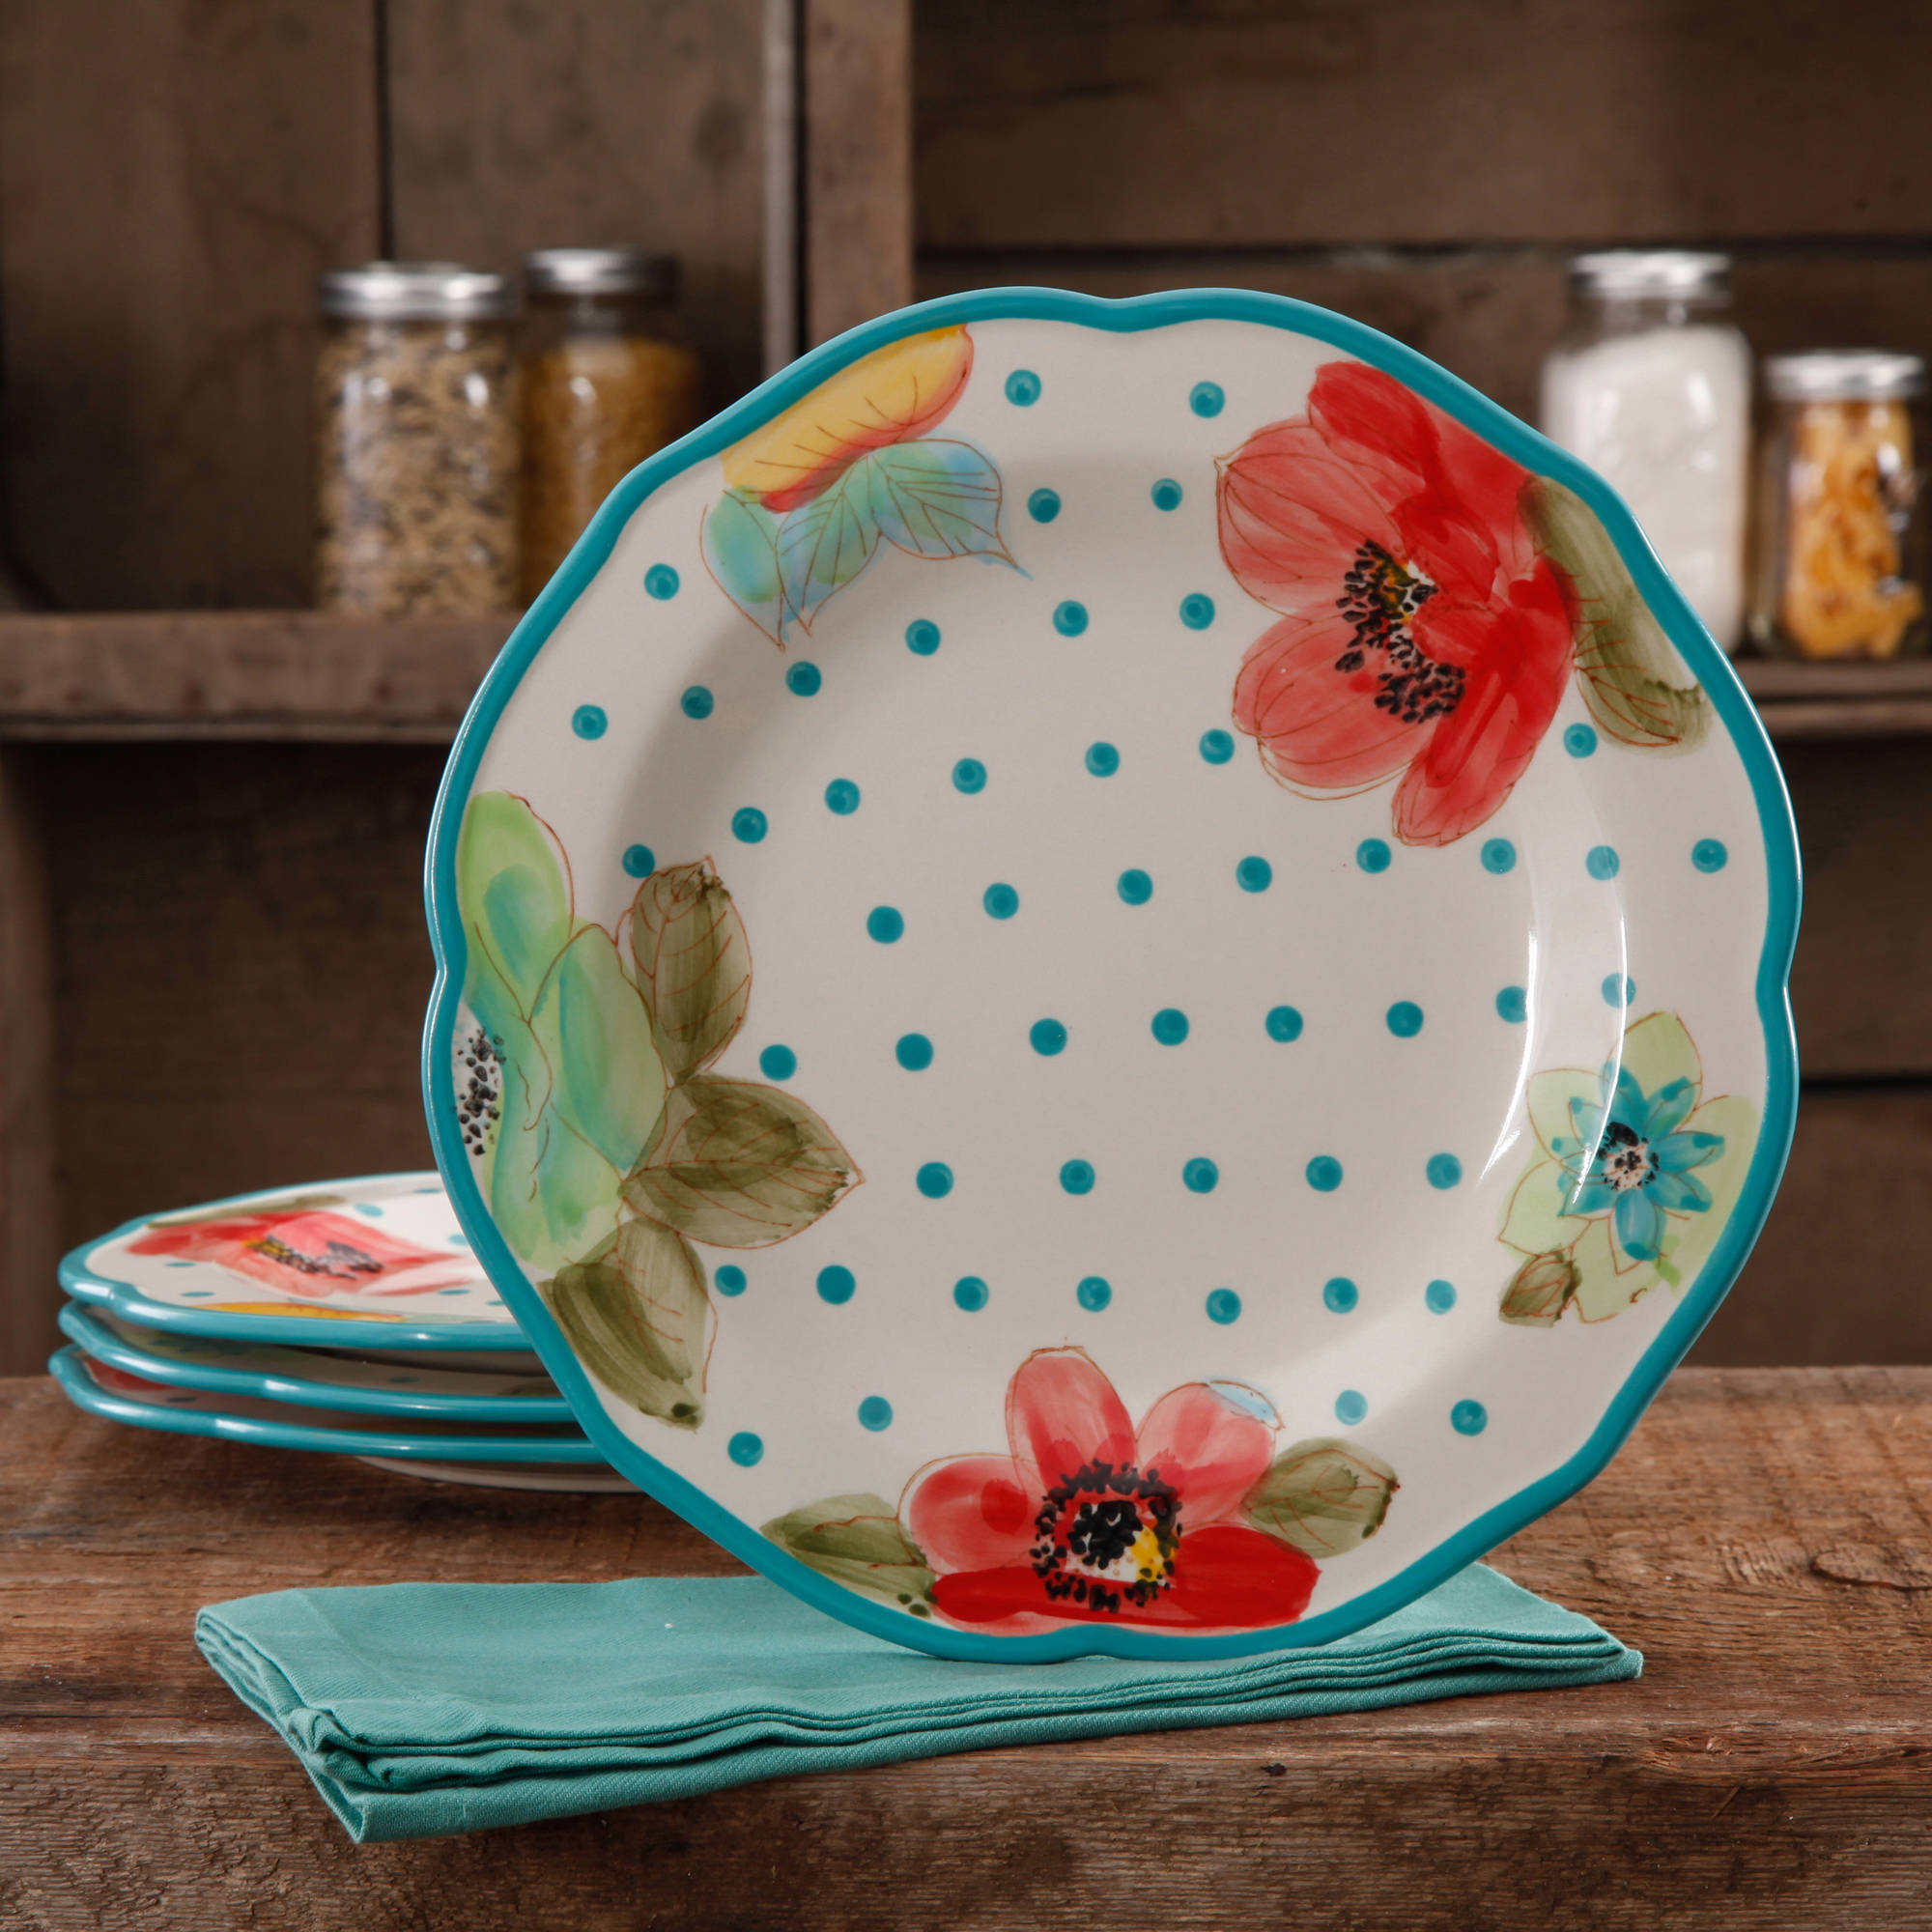 The Pioneer Woman Vintage Bloom 4-Pack Scalloped Dinner Plate Set, Multi-Color